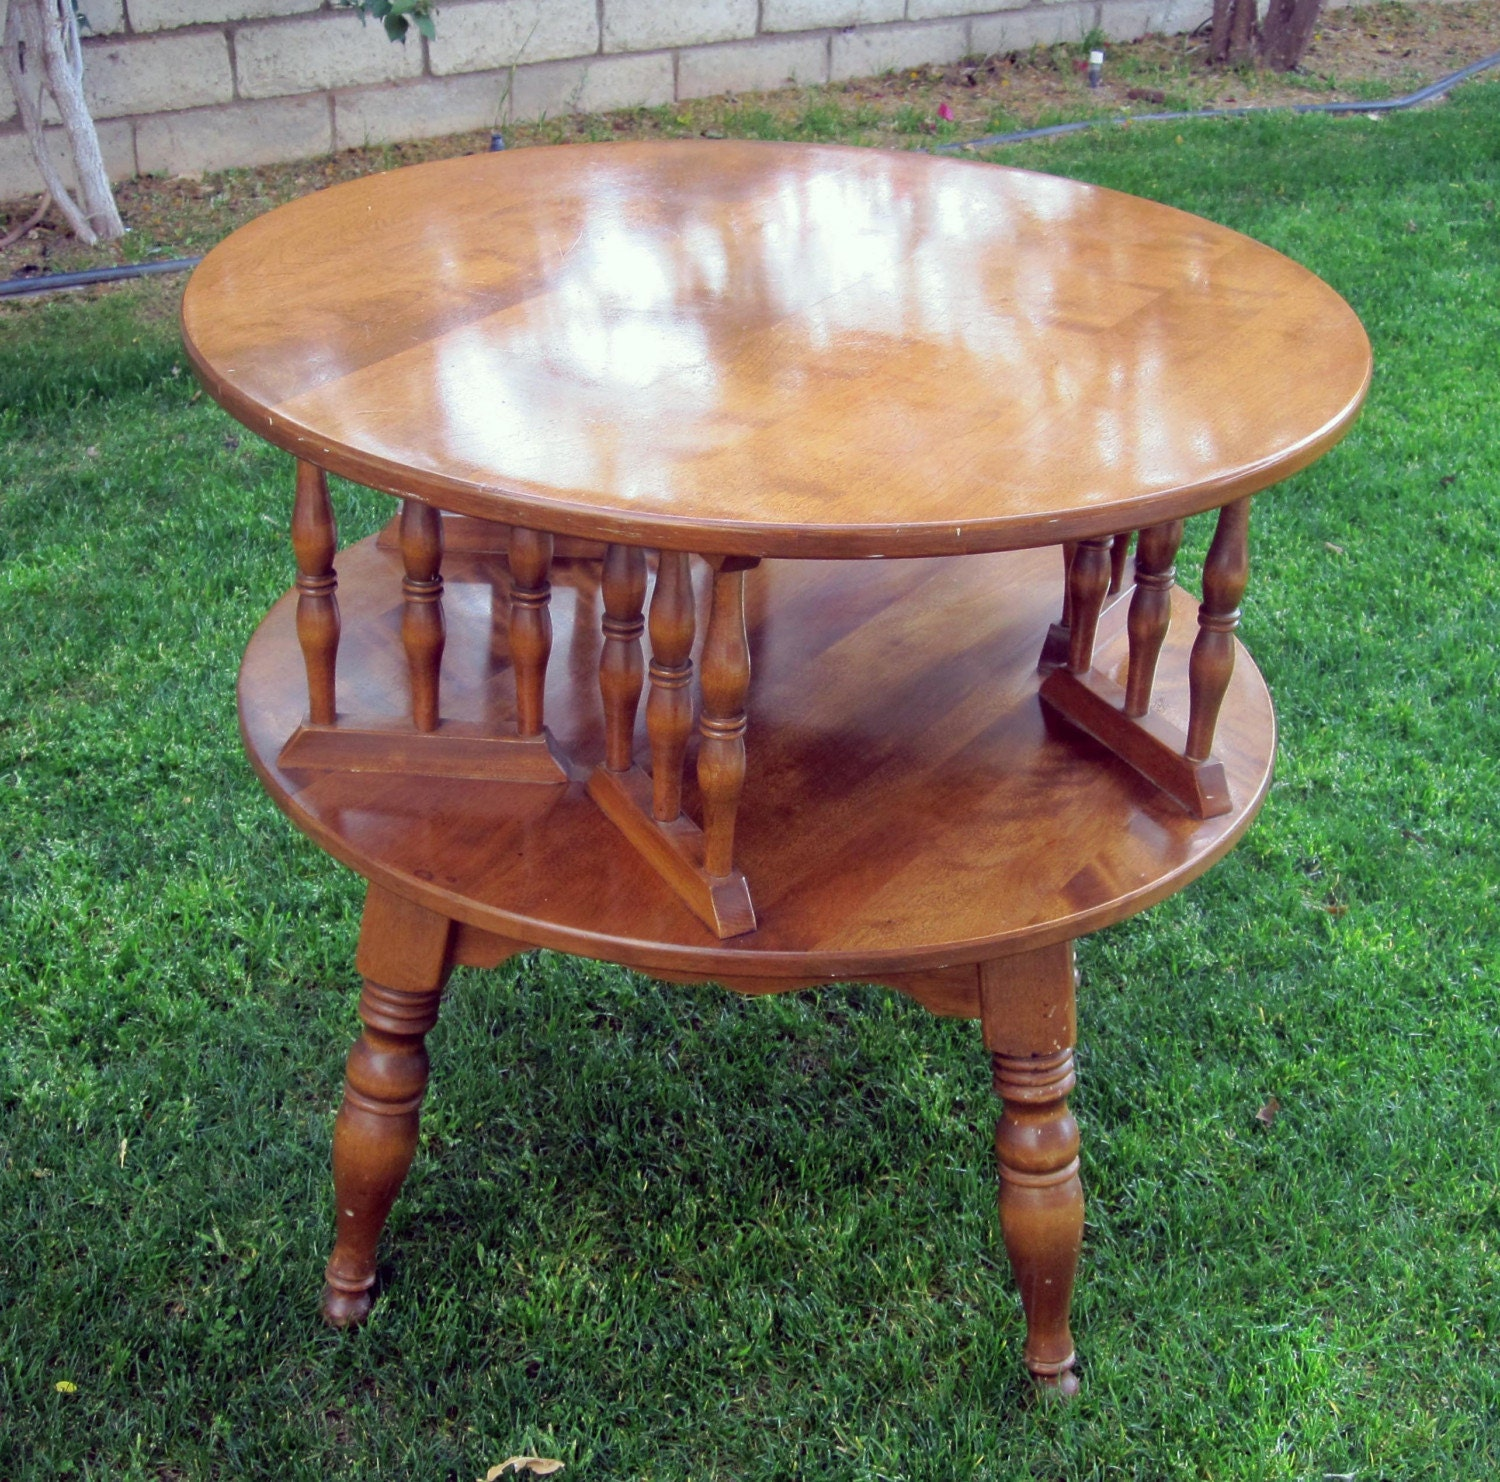 Ethan Allen Trevor Coffee Table: Vintage Baumritter Ethan Allen Rotating Coffee Table / Retro